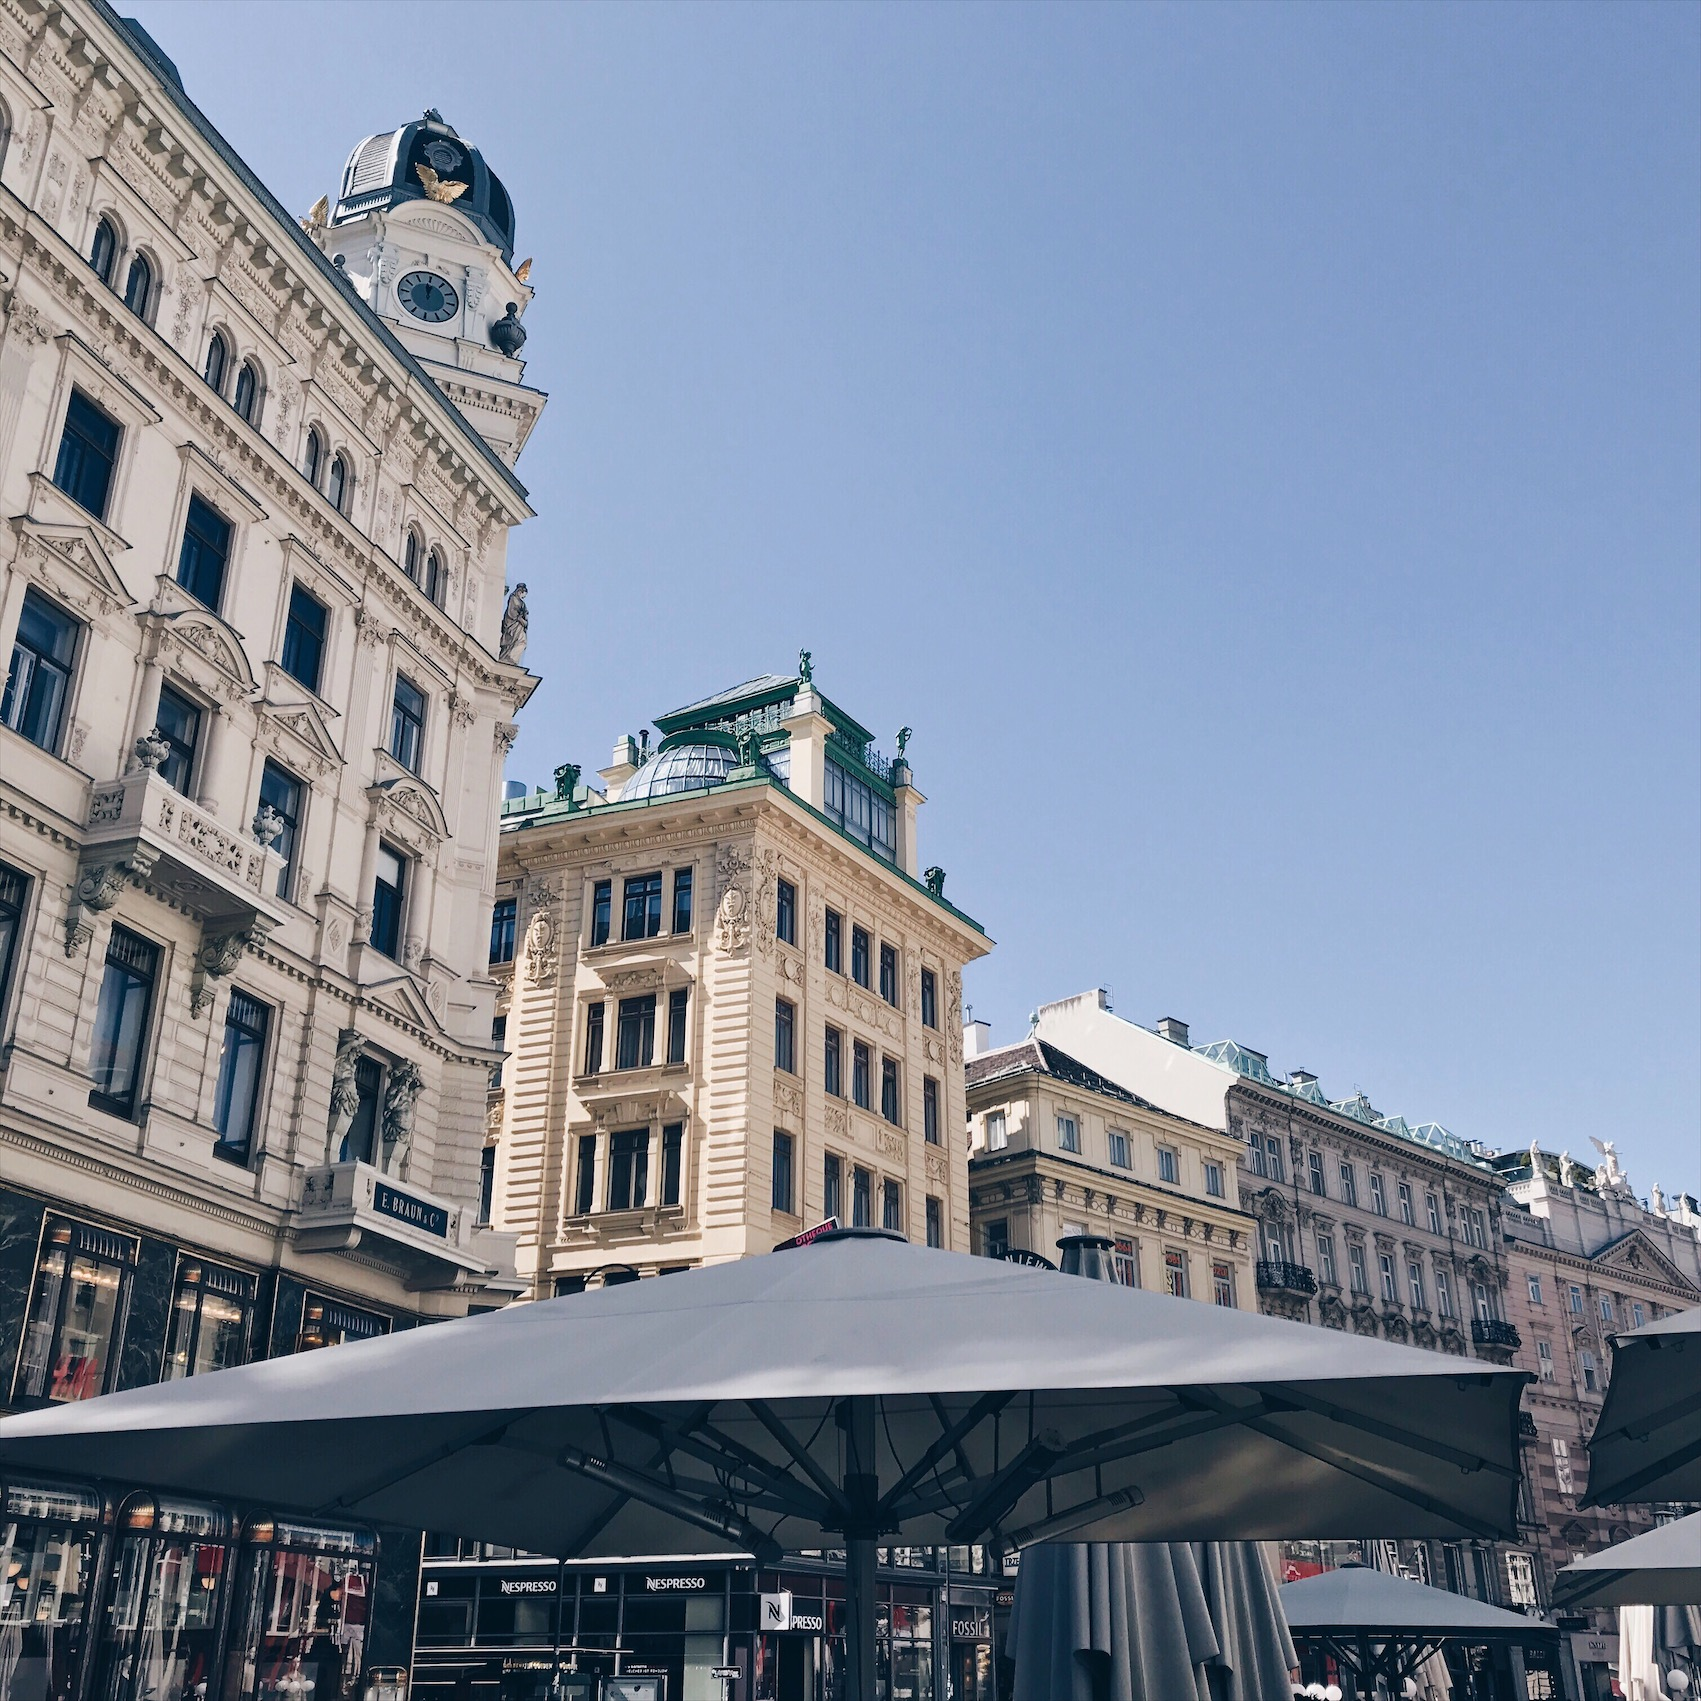 My favorite places in Vienna